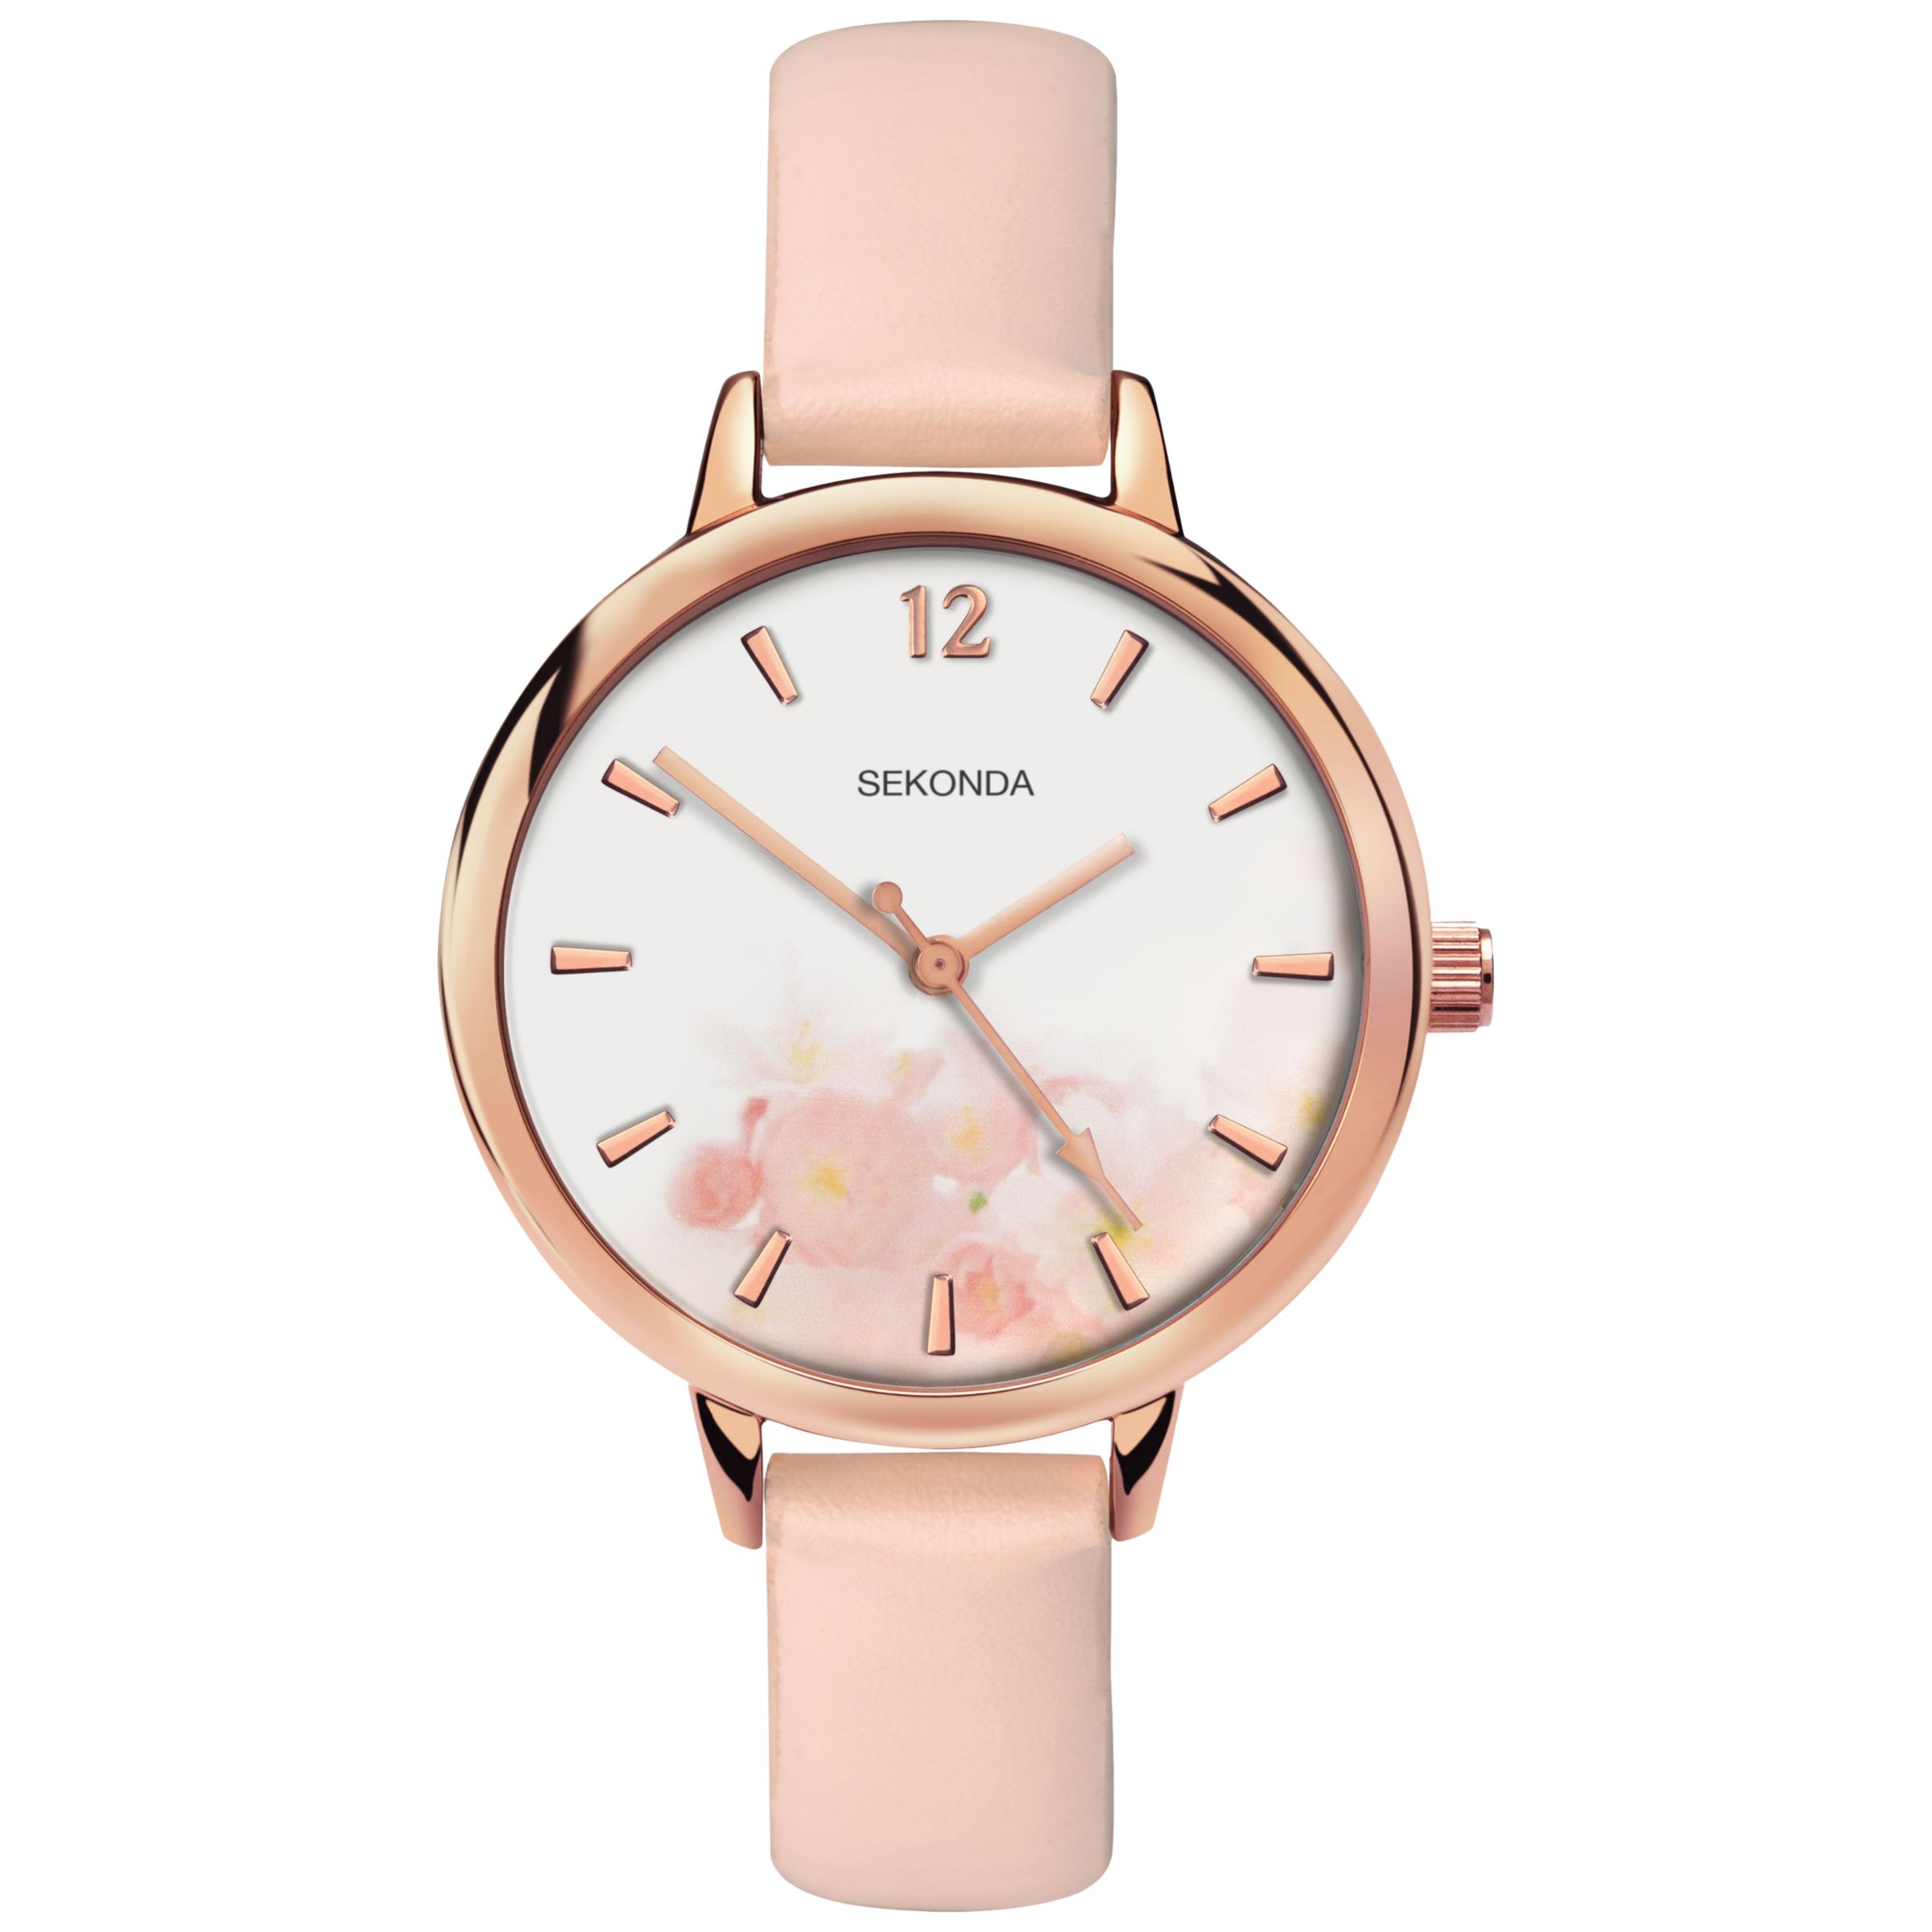 Sekonda Sekonda 2624.27 Women's Floral Faux Leather Strap Watch, Pale Pink/White